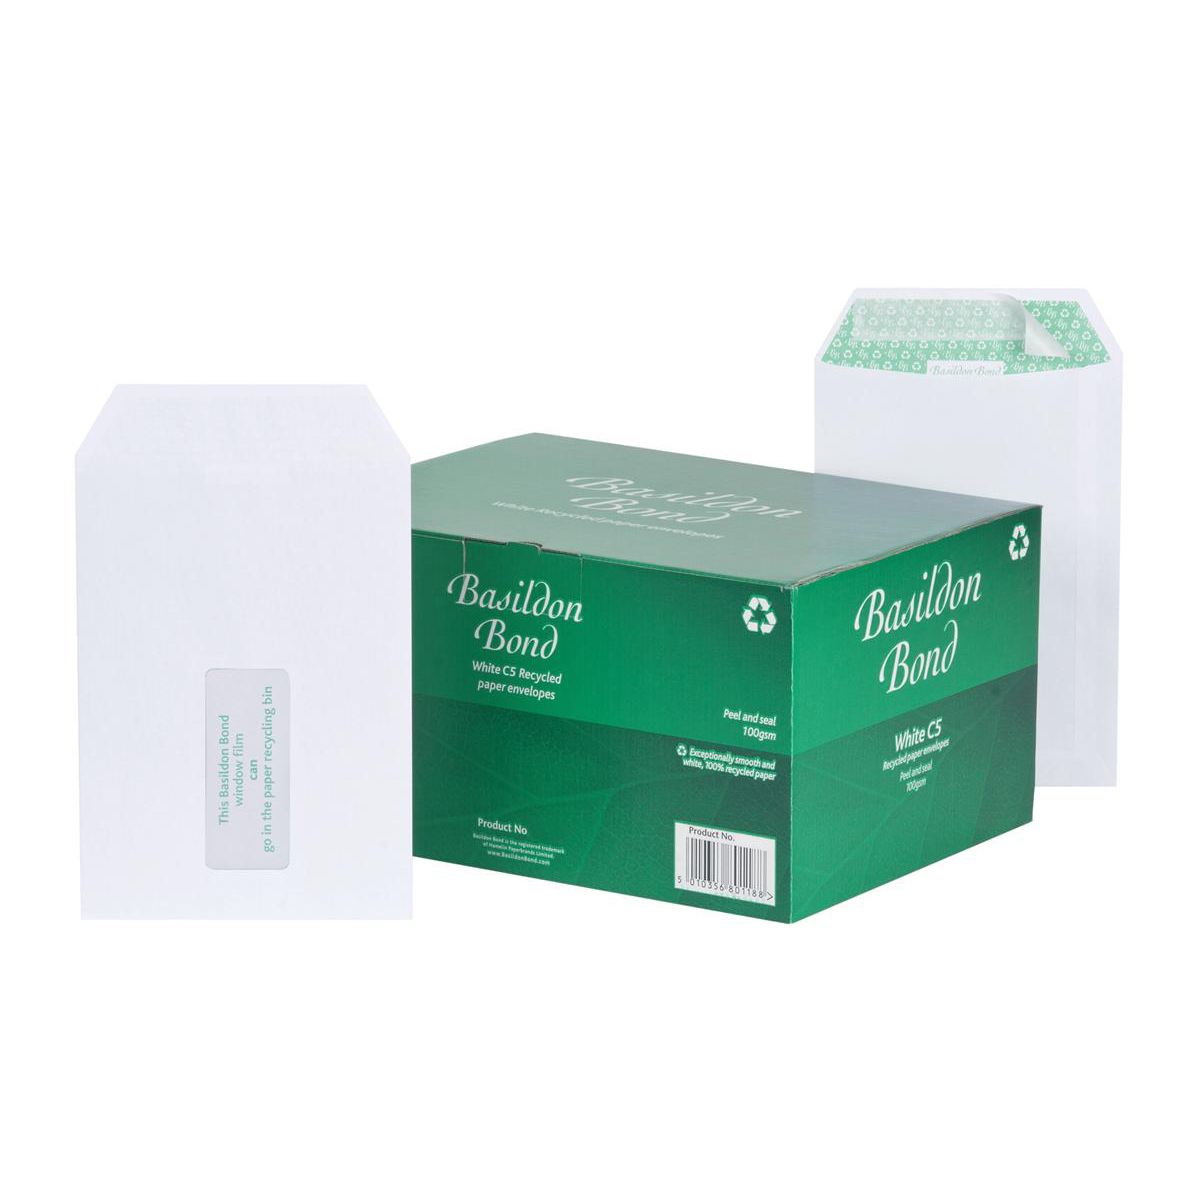 Window envelopes Basildon Bond Envelopes FSC Recycled Pocket P&S Window 120gsm C5 White Ref J80119 Pack 500